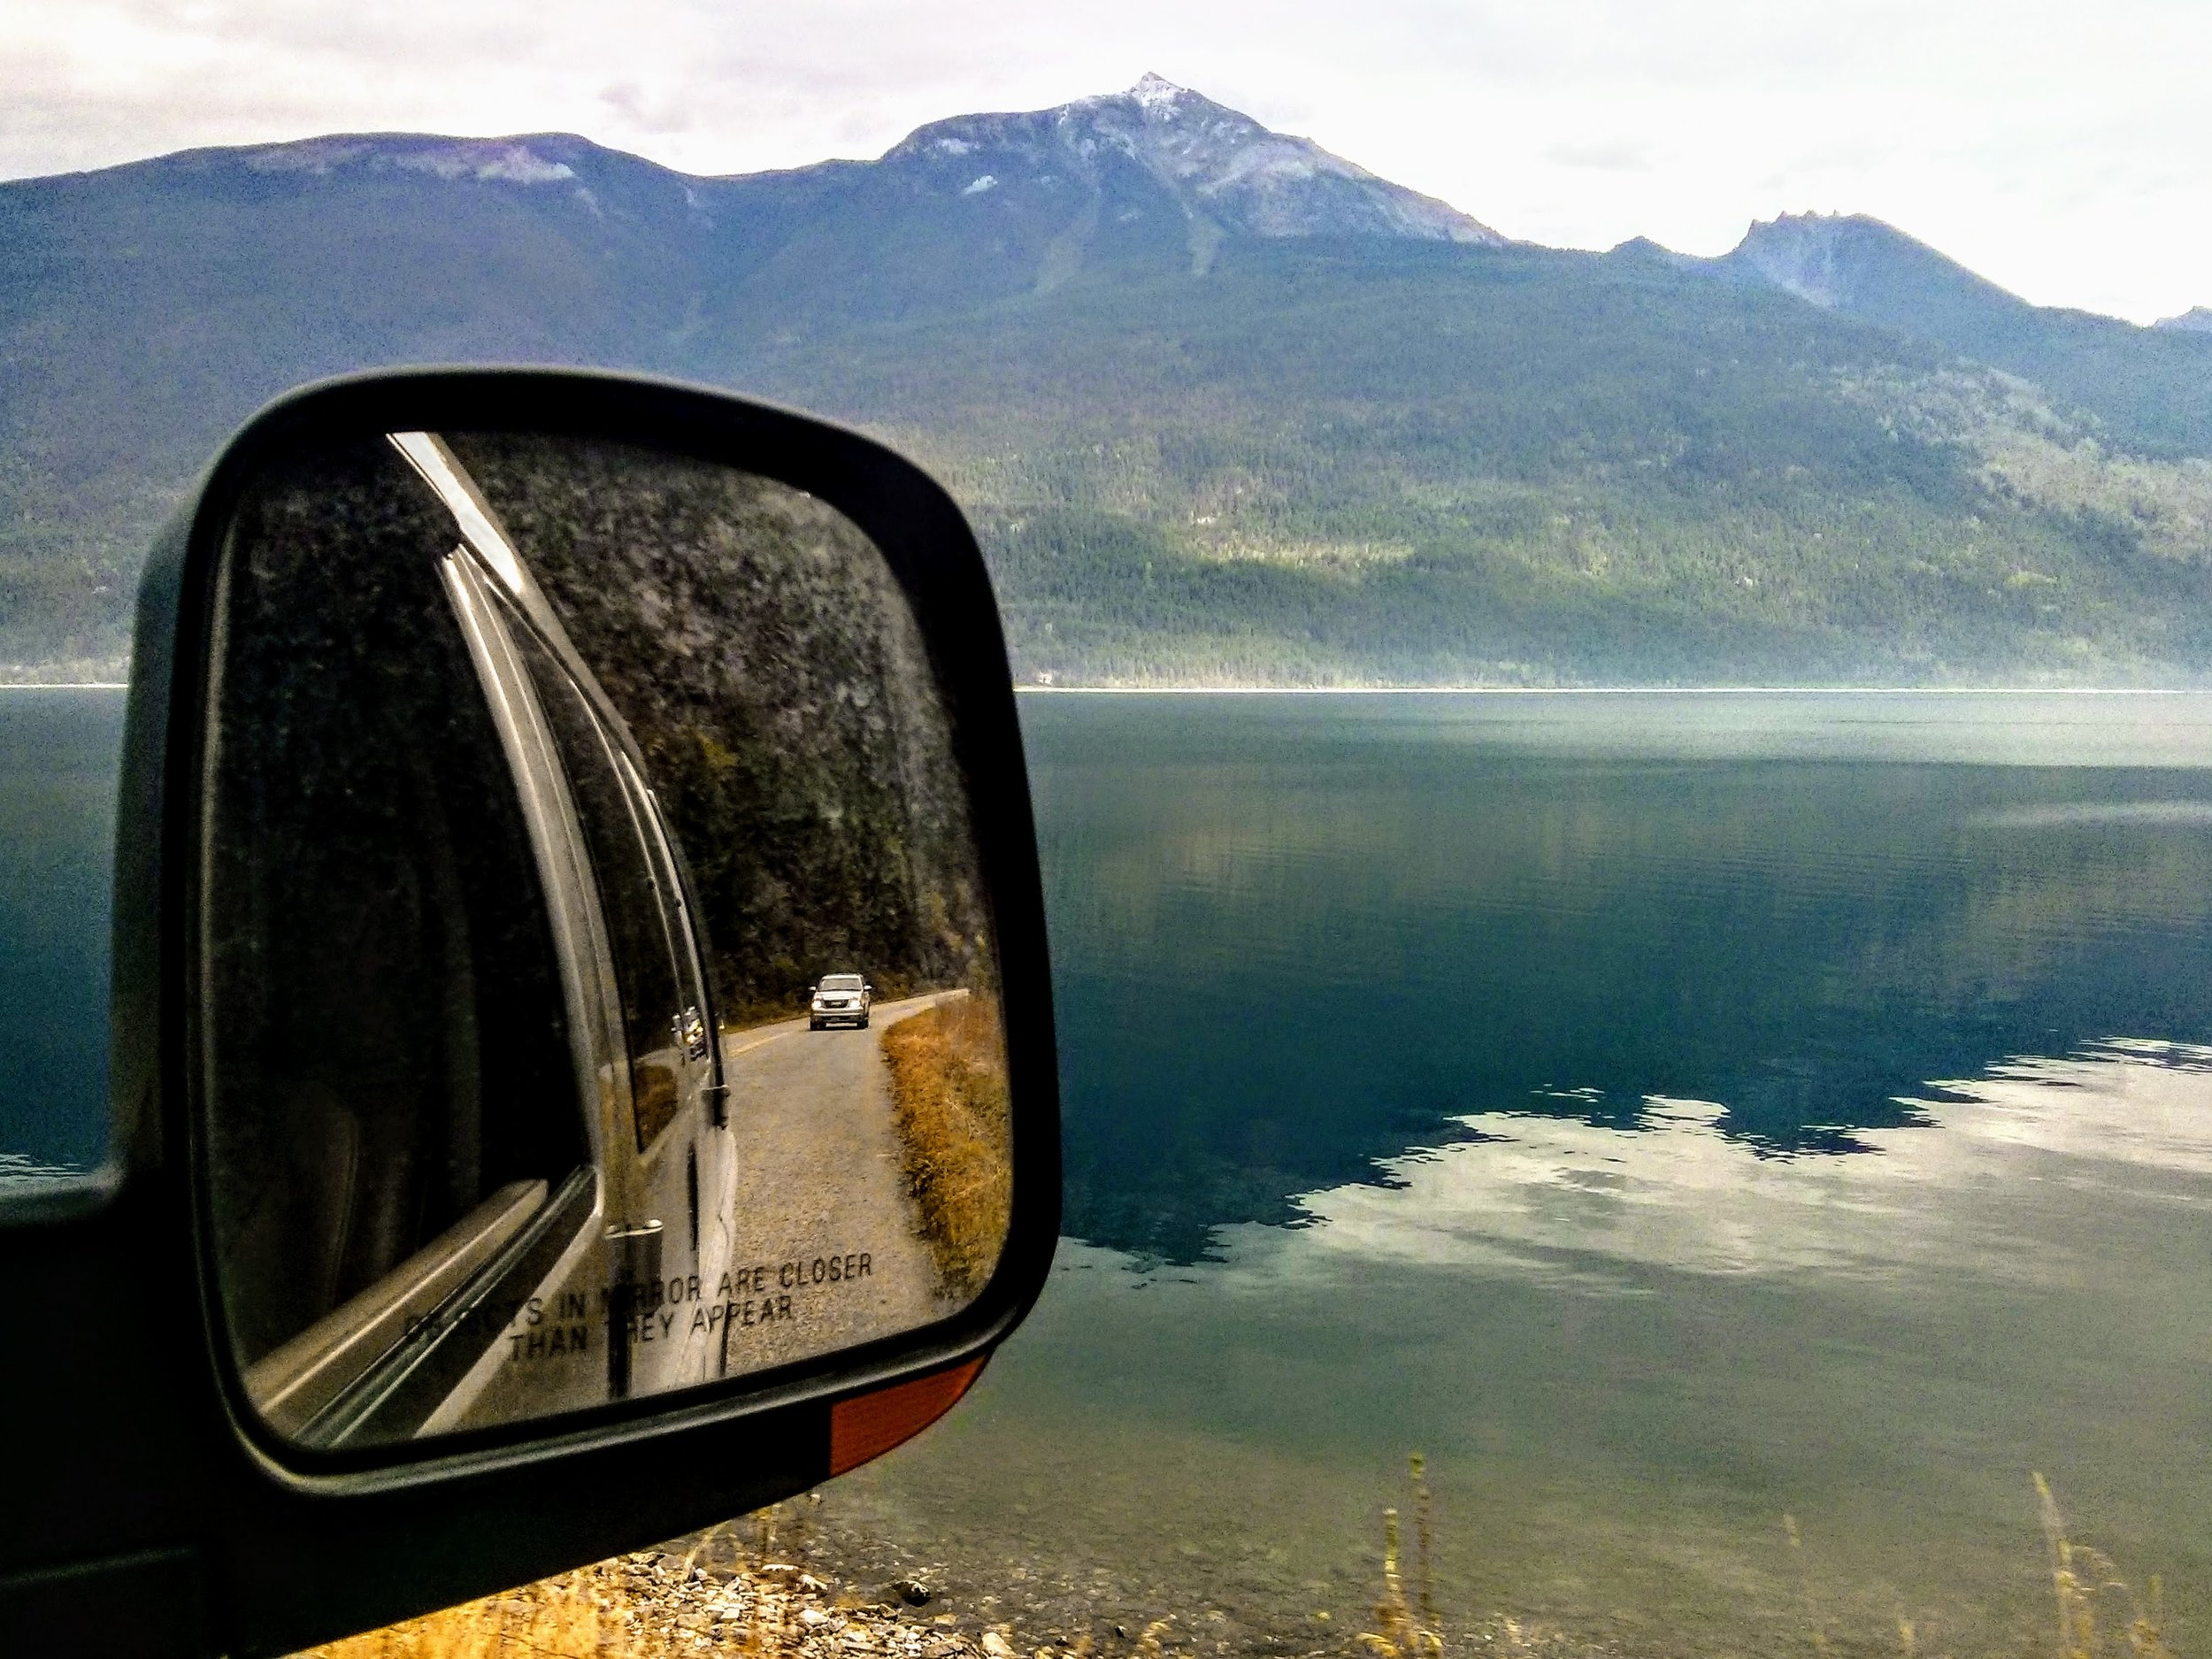 Any drive in the Kootenays is an epic drive. The Western shore of Kootenay Lake does not disappoint.